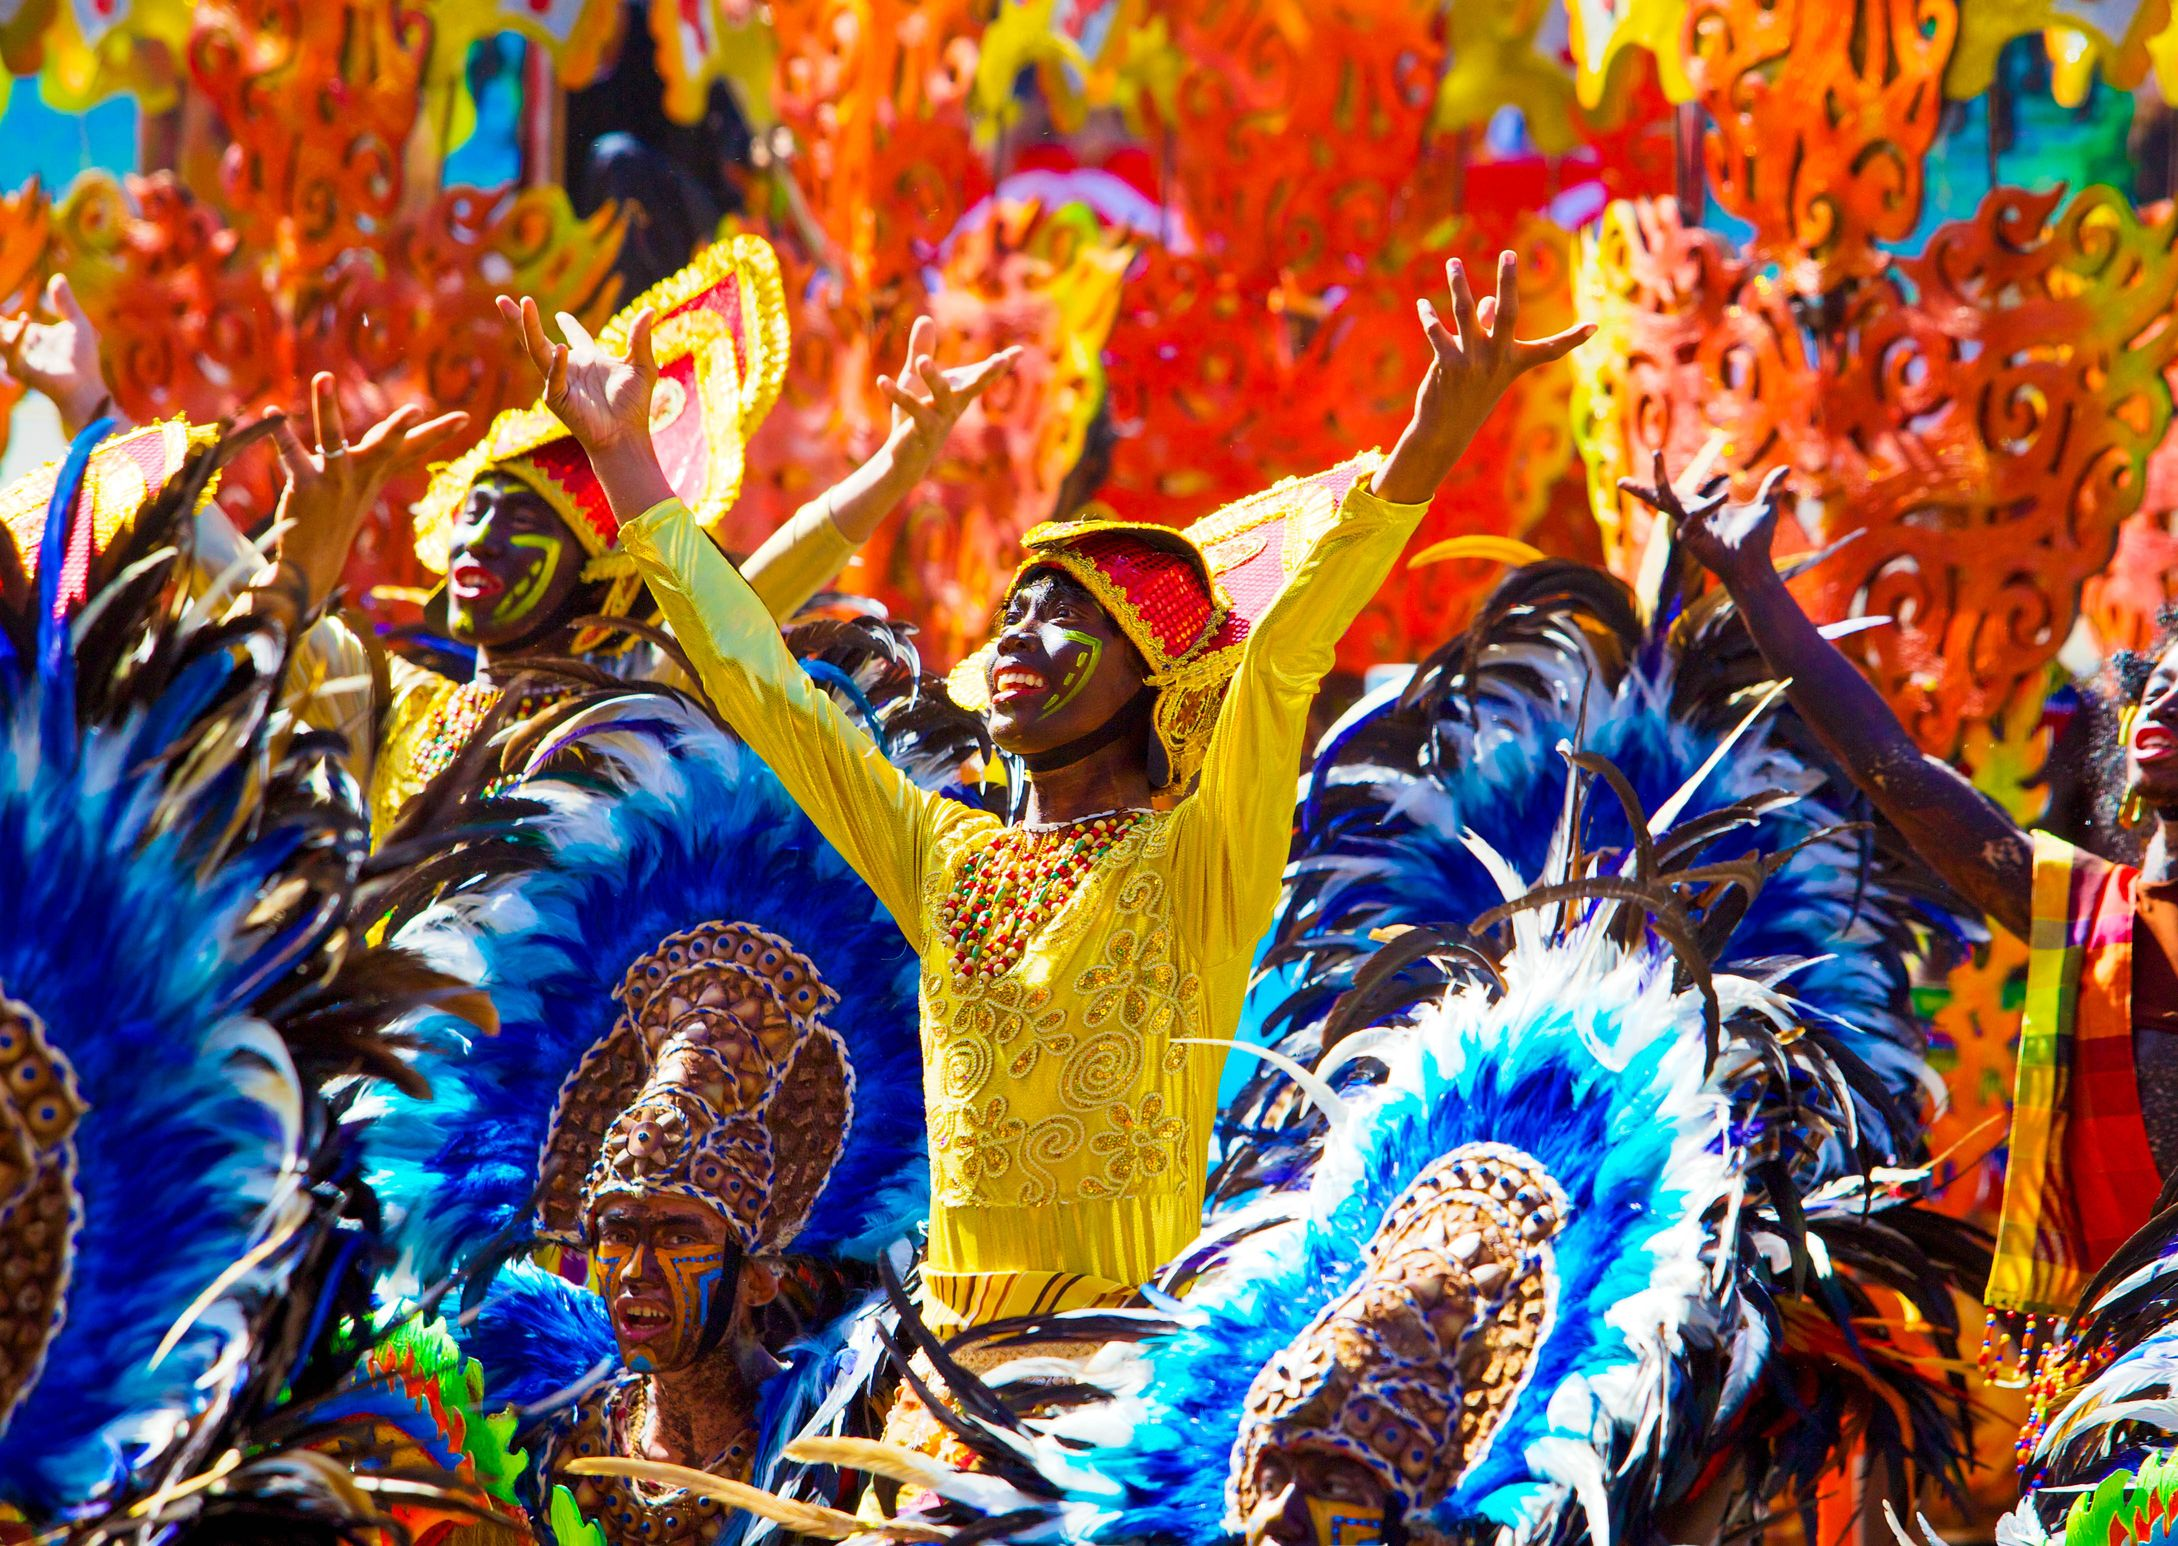 People in colorful costumes participating in a festival street parade